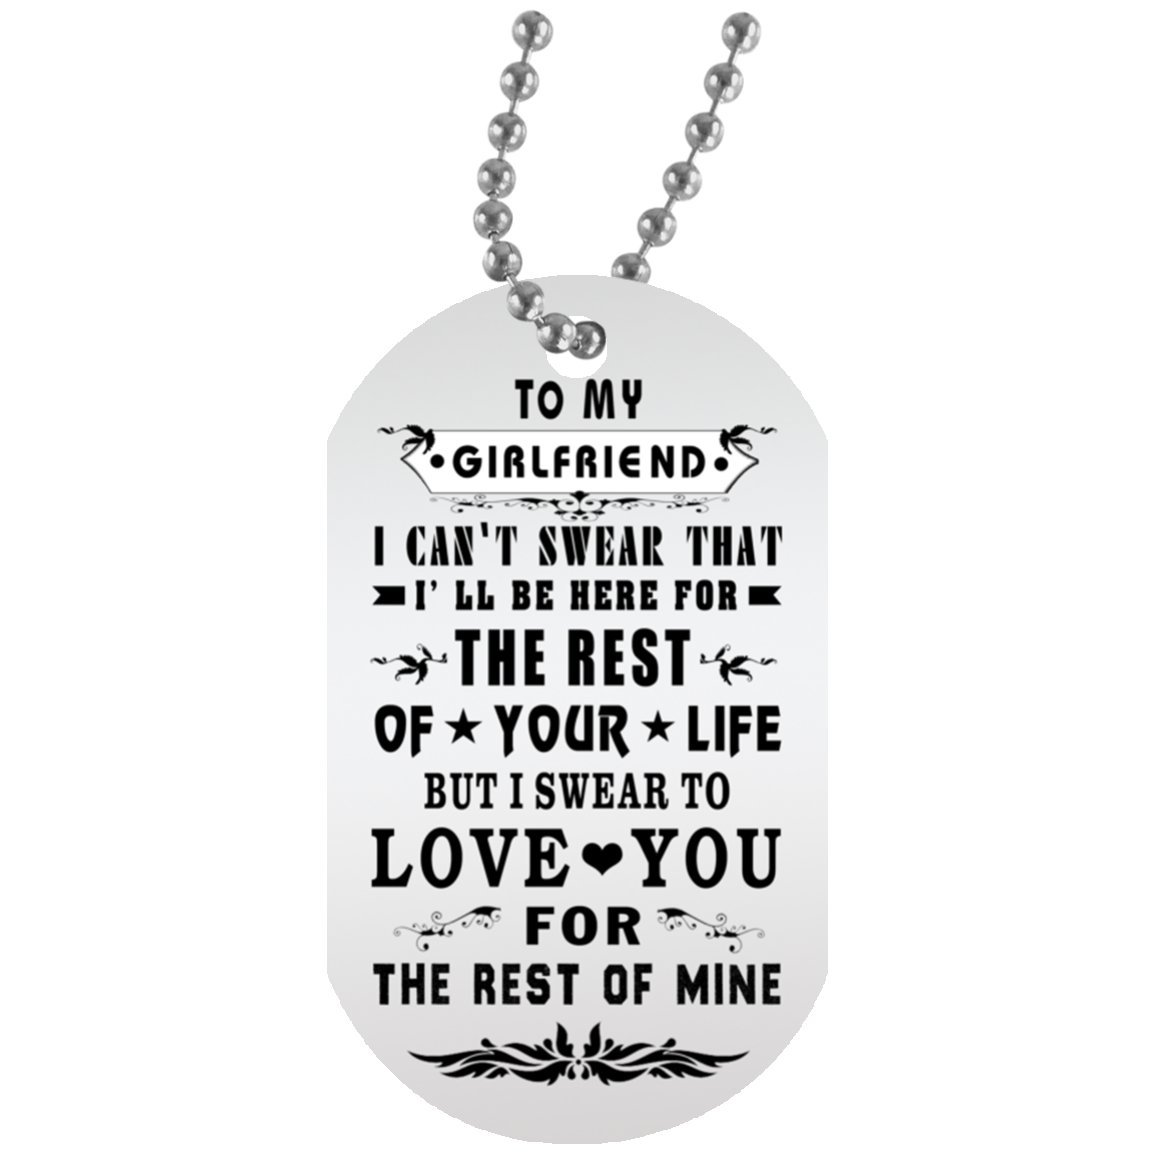 to My Girlfriend Dog Tag with Chain - Girlfriend and Boyfriend Necklace Personalised for Teen Her, On Valentine's Day, Military Inspired Aluminum Dog tag